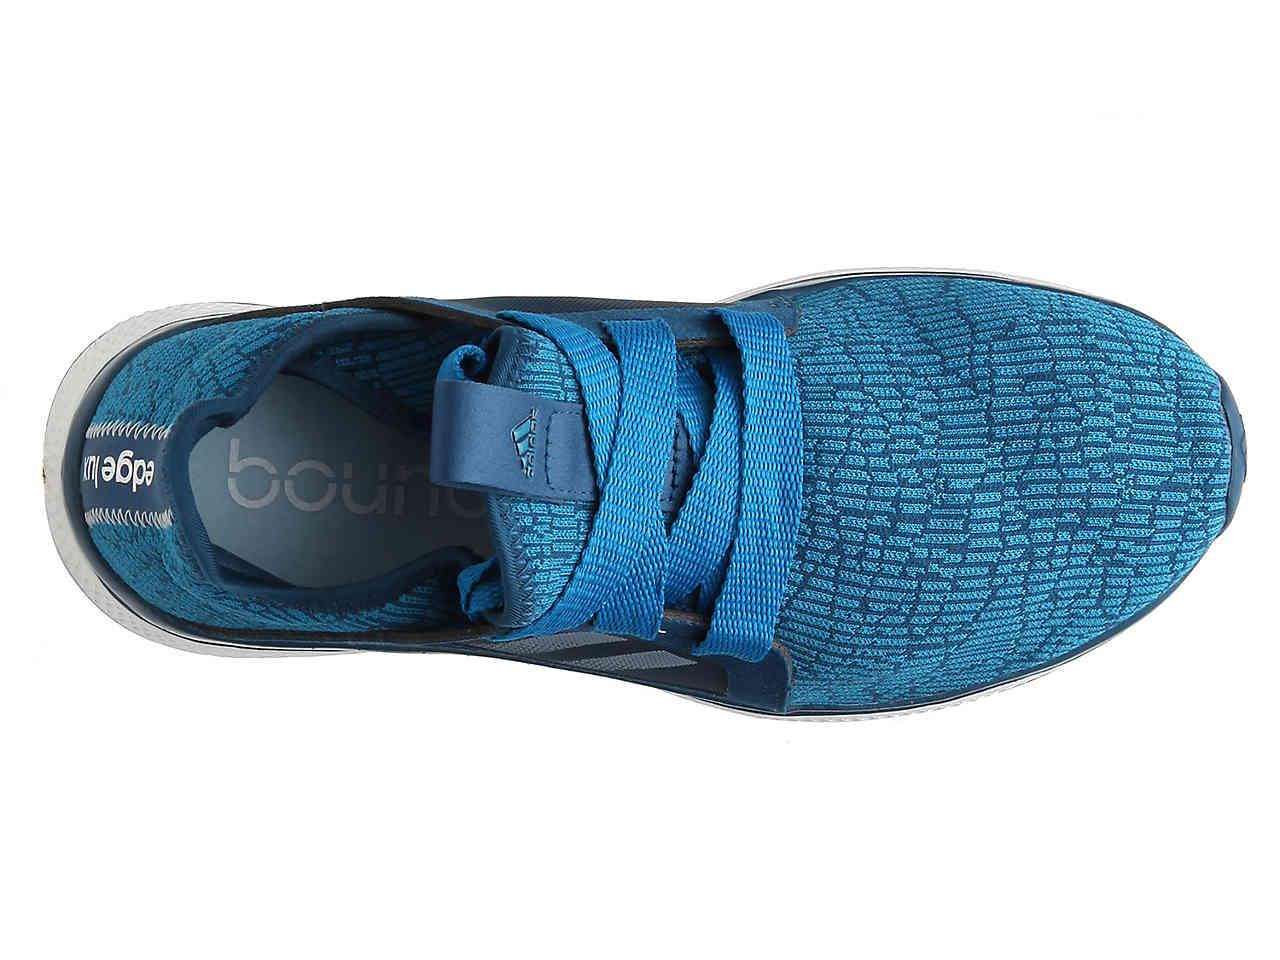 reputable site eb15f 6c81a Lyst - adidas Edge Bounce Lightweight Running Shoe in Blue